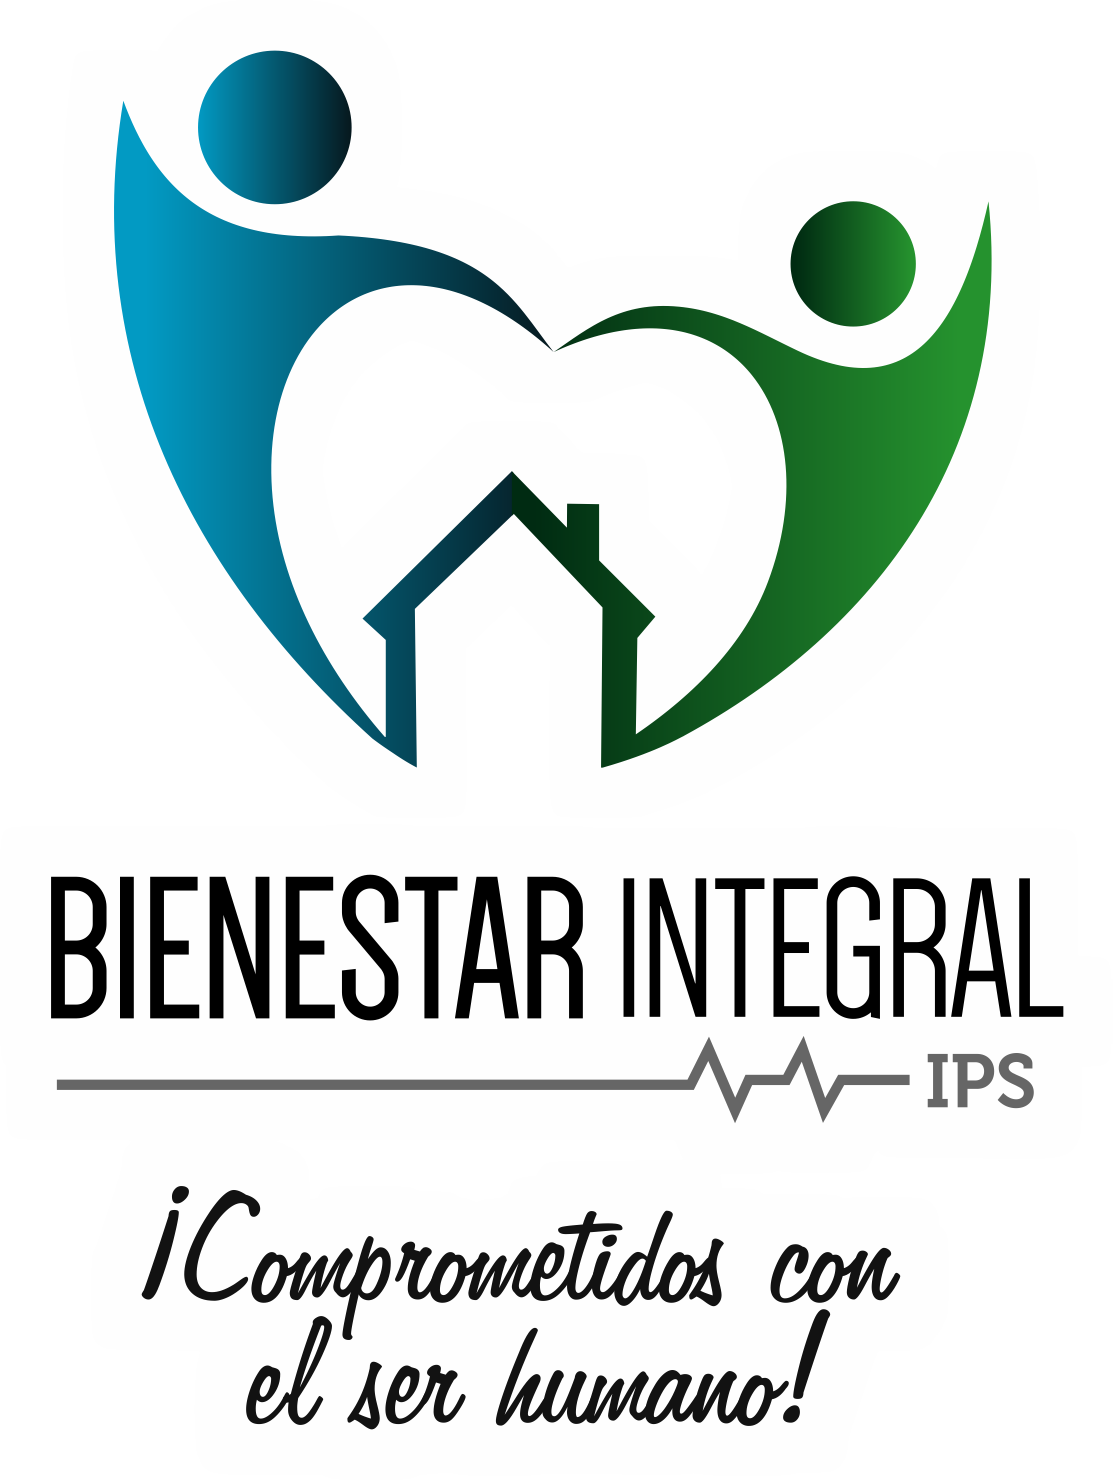 Bienestar Integral IPS